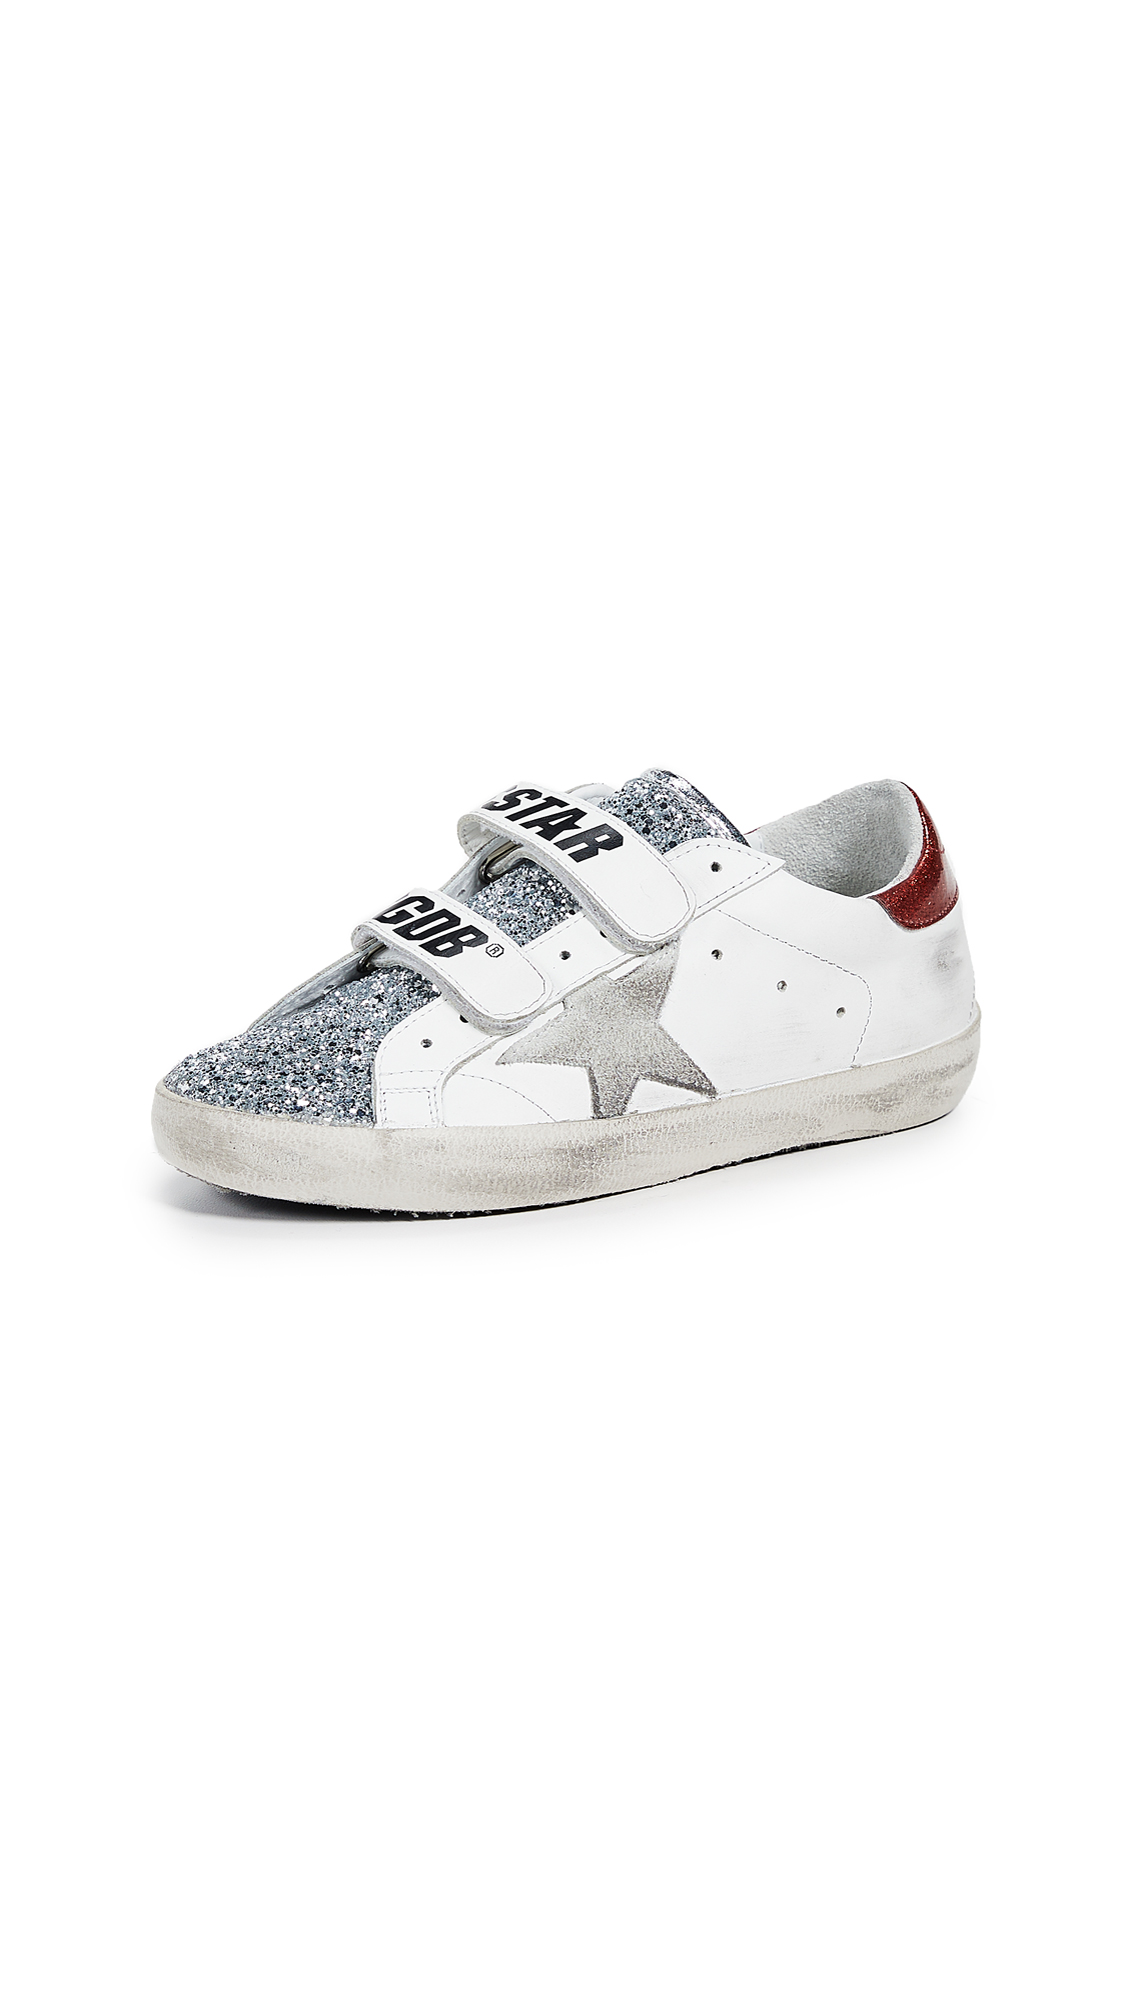 Golden Goose Superstar Old School Sneakers - White/Ice